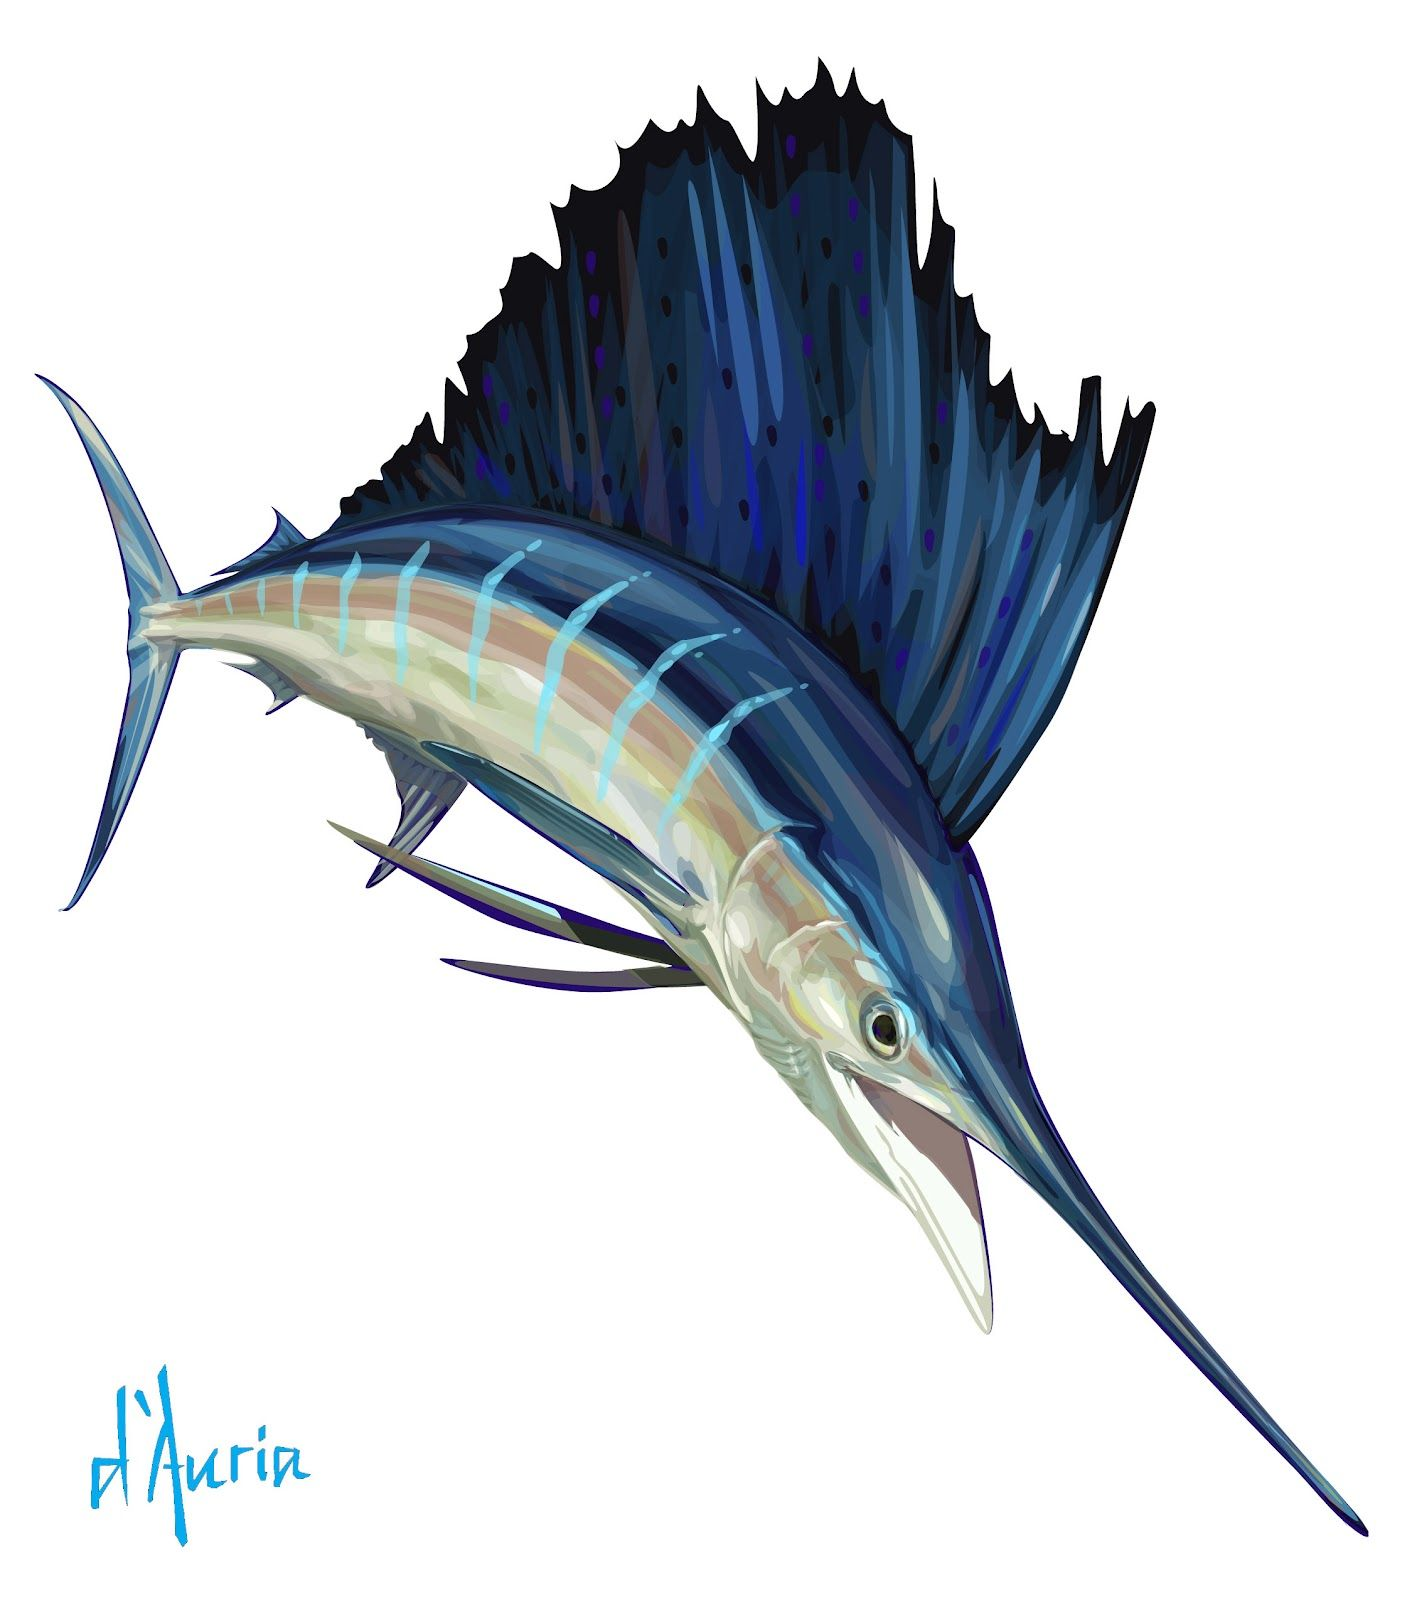 sailfish sailfish fish fish art fish drawings